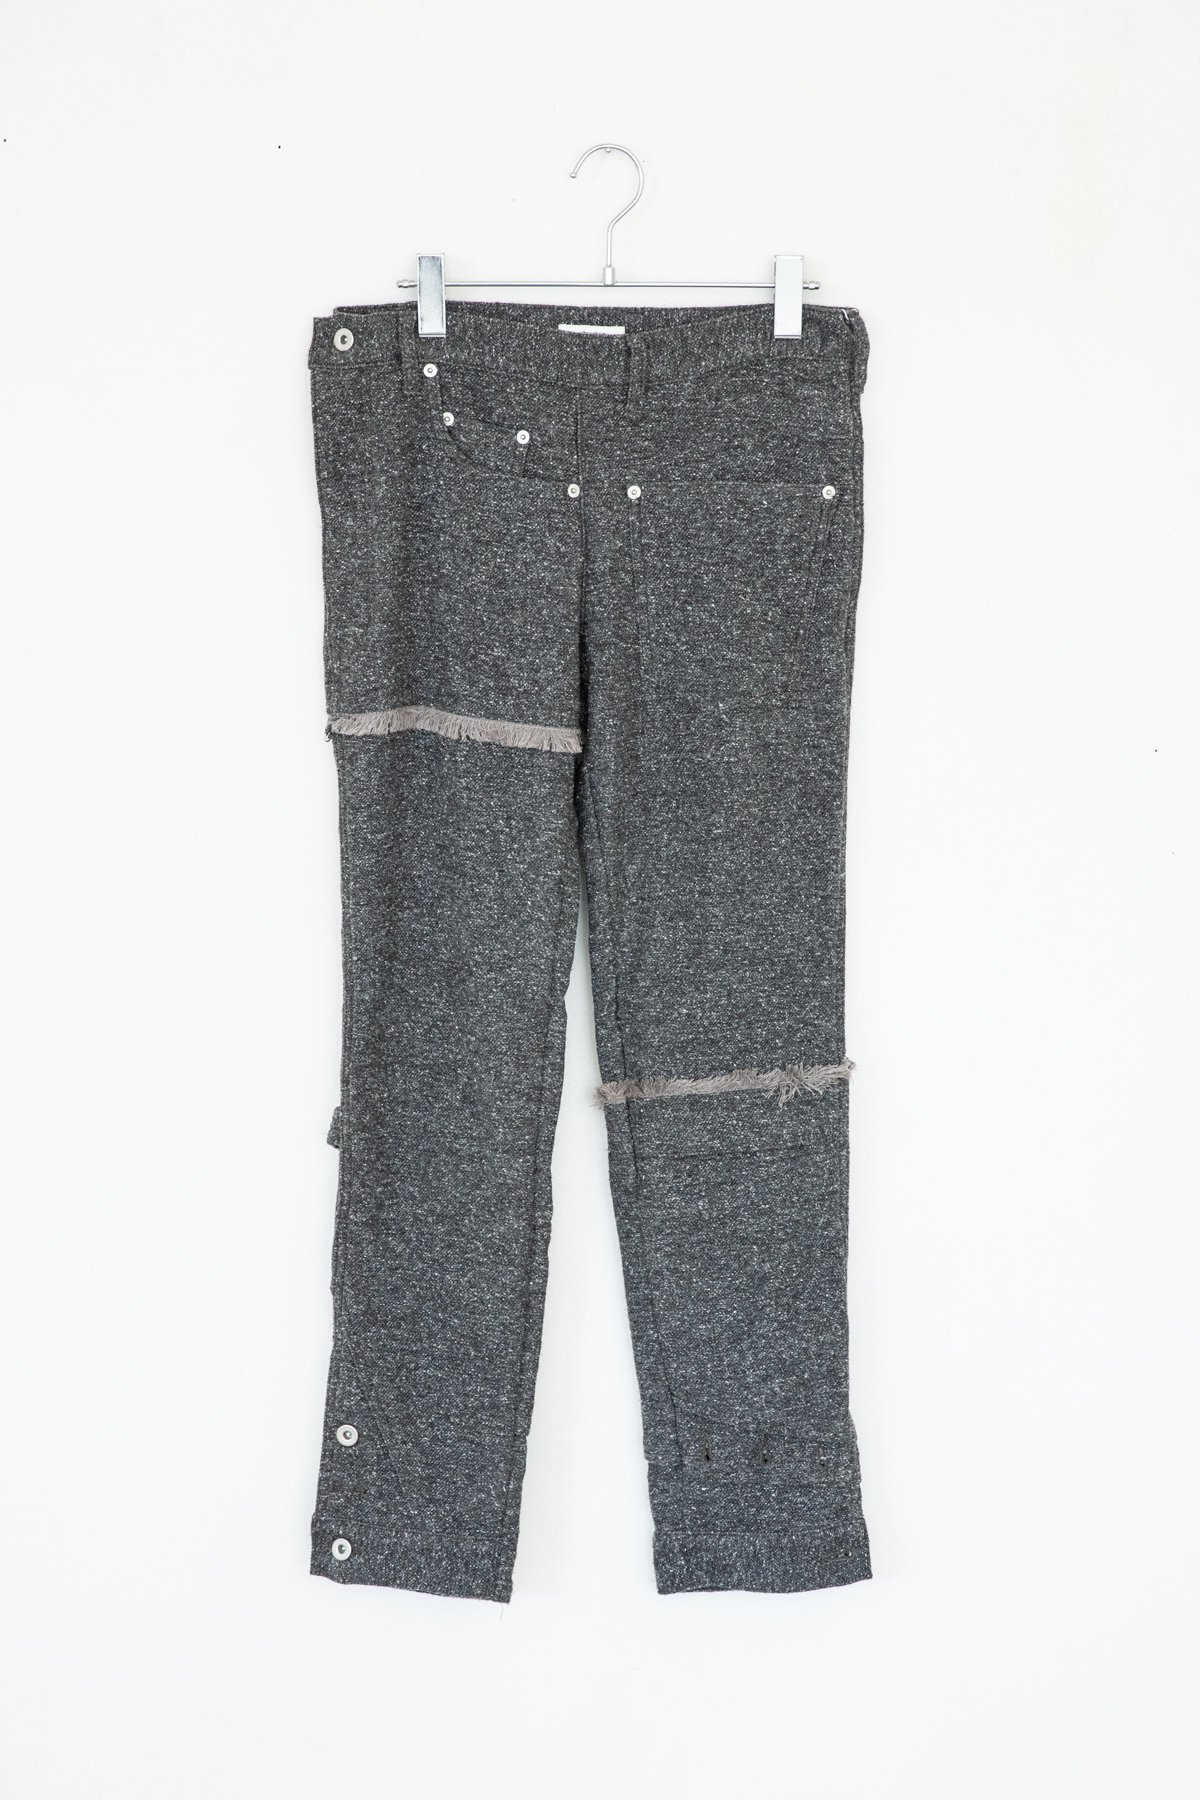 whowhat / PAZZLE DENIM CHARCOAL WHITE NEP